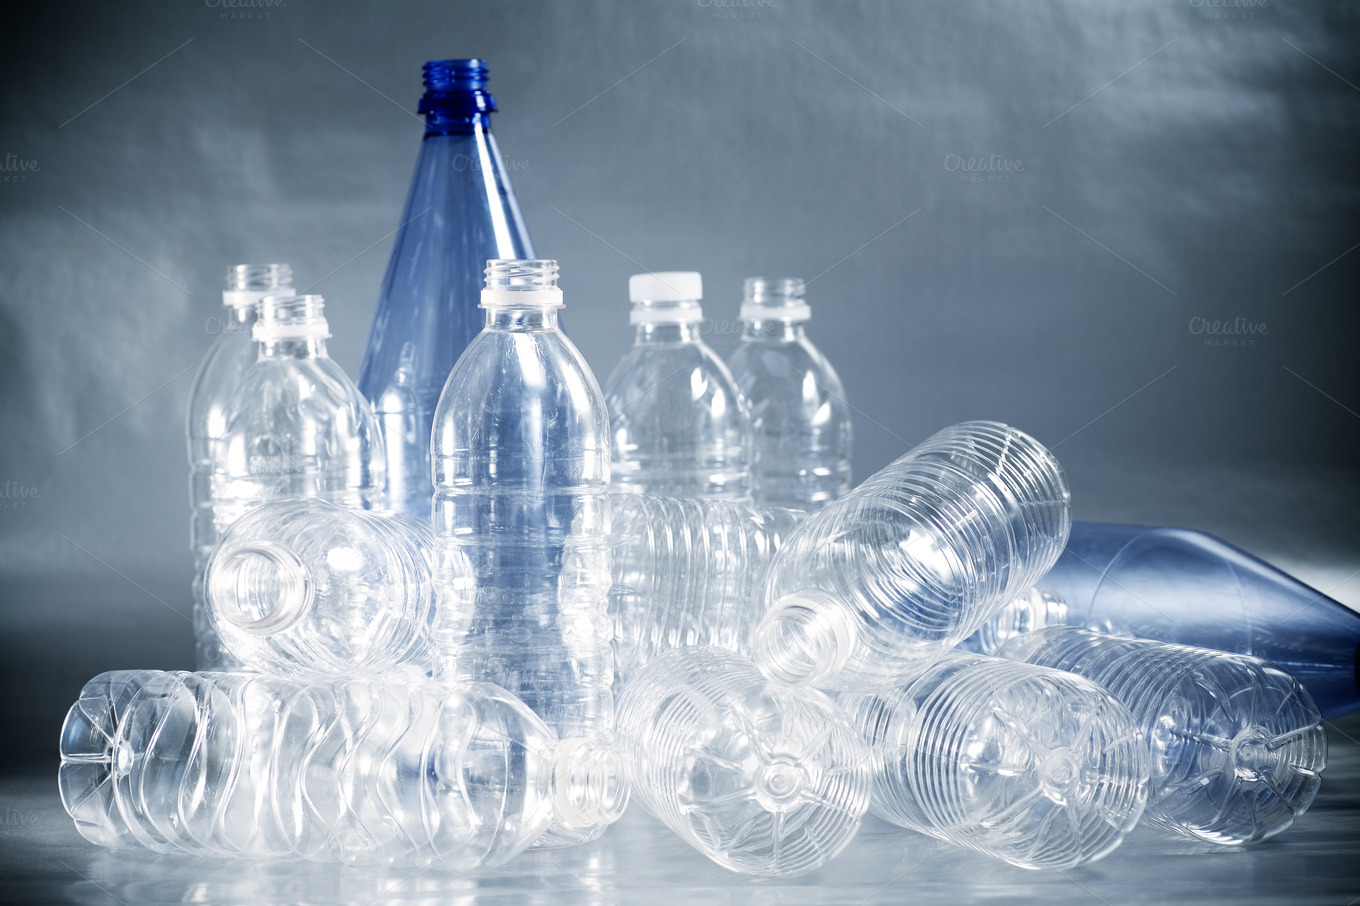 Empty plastic water bottles industrial photos on for Creativity with plastic bottles